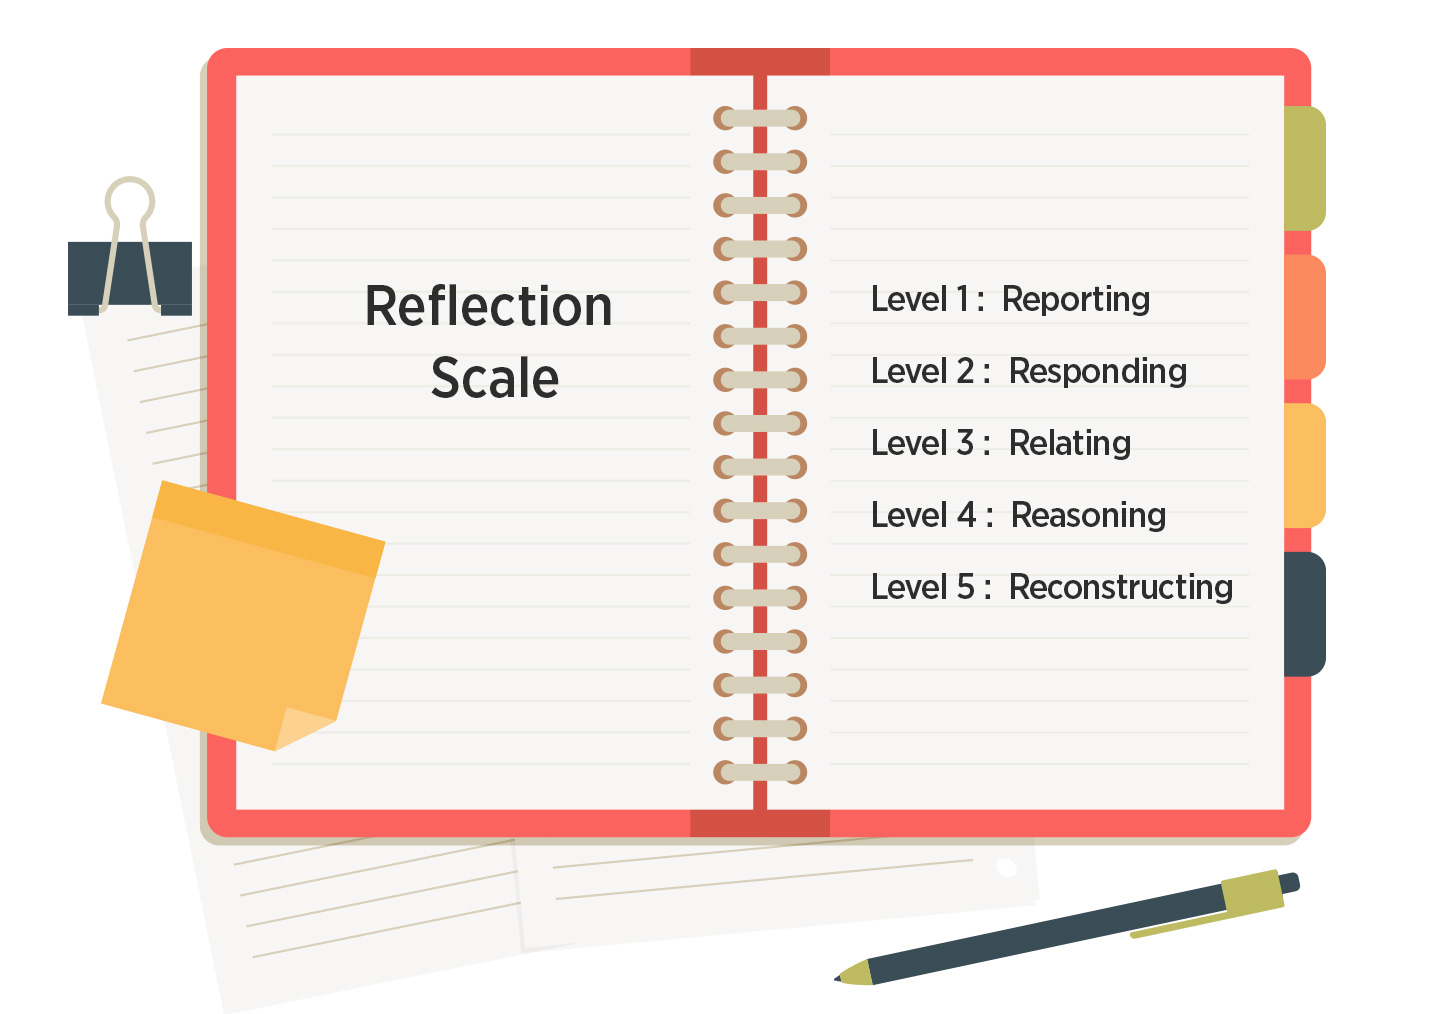 Reflection Scale